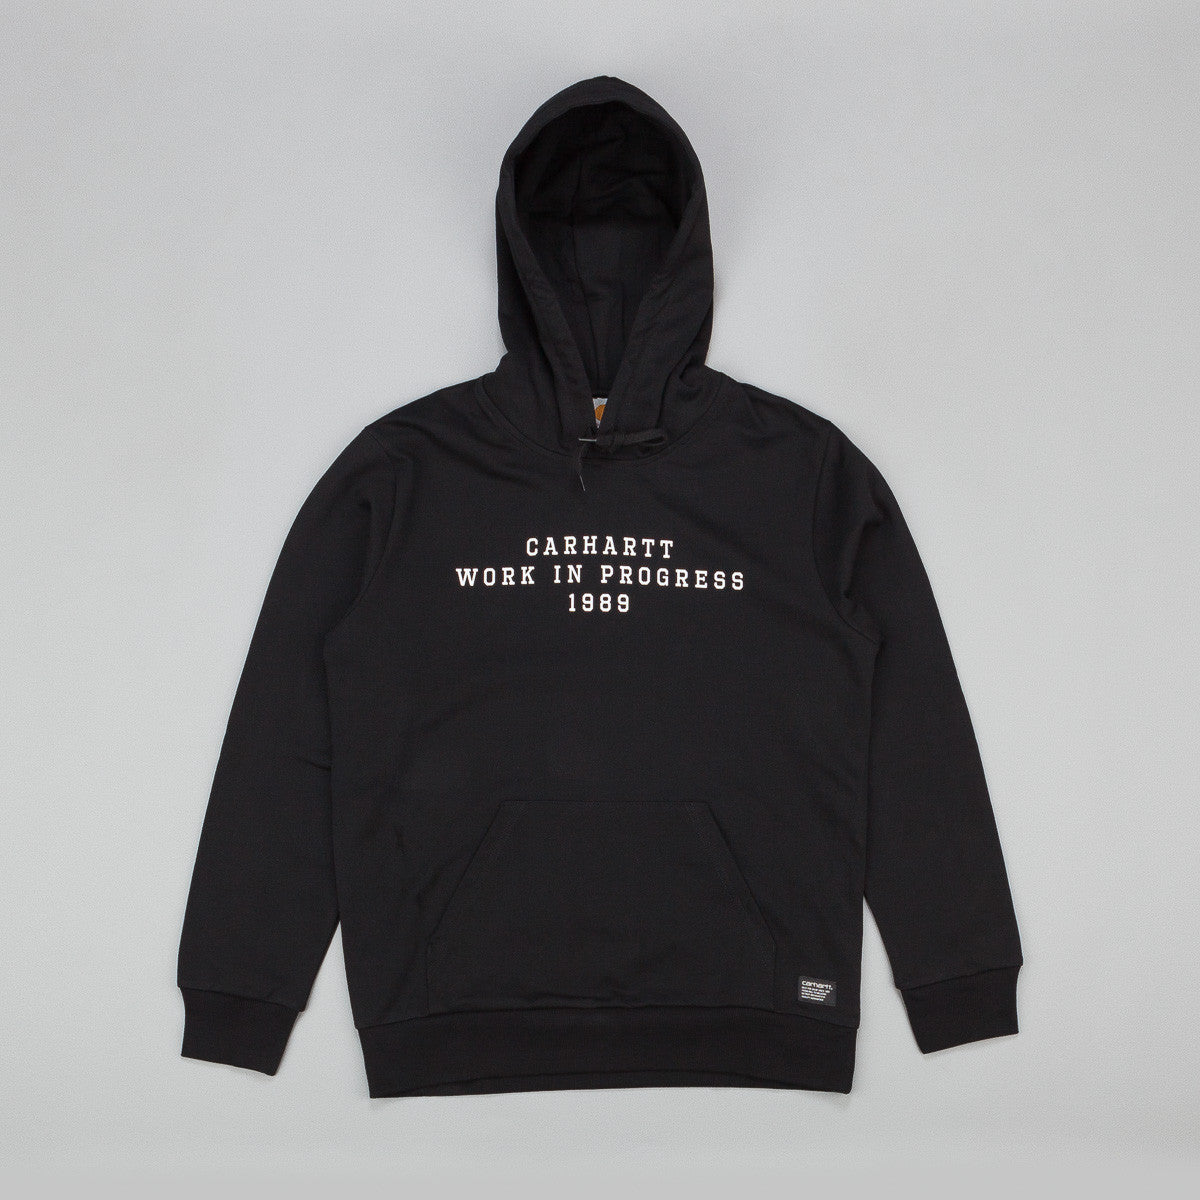 Carhartt Imprint Hooded Sweatshirt